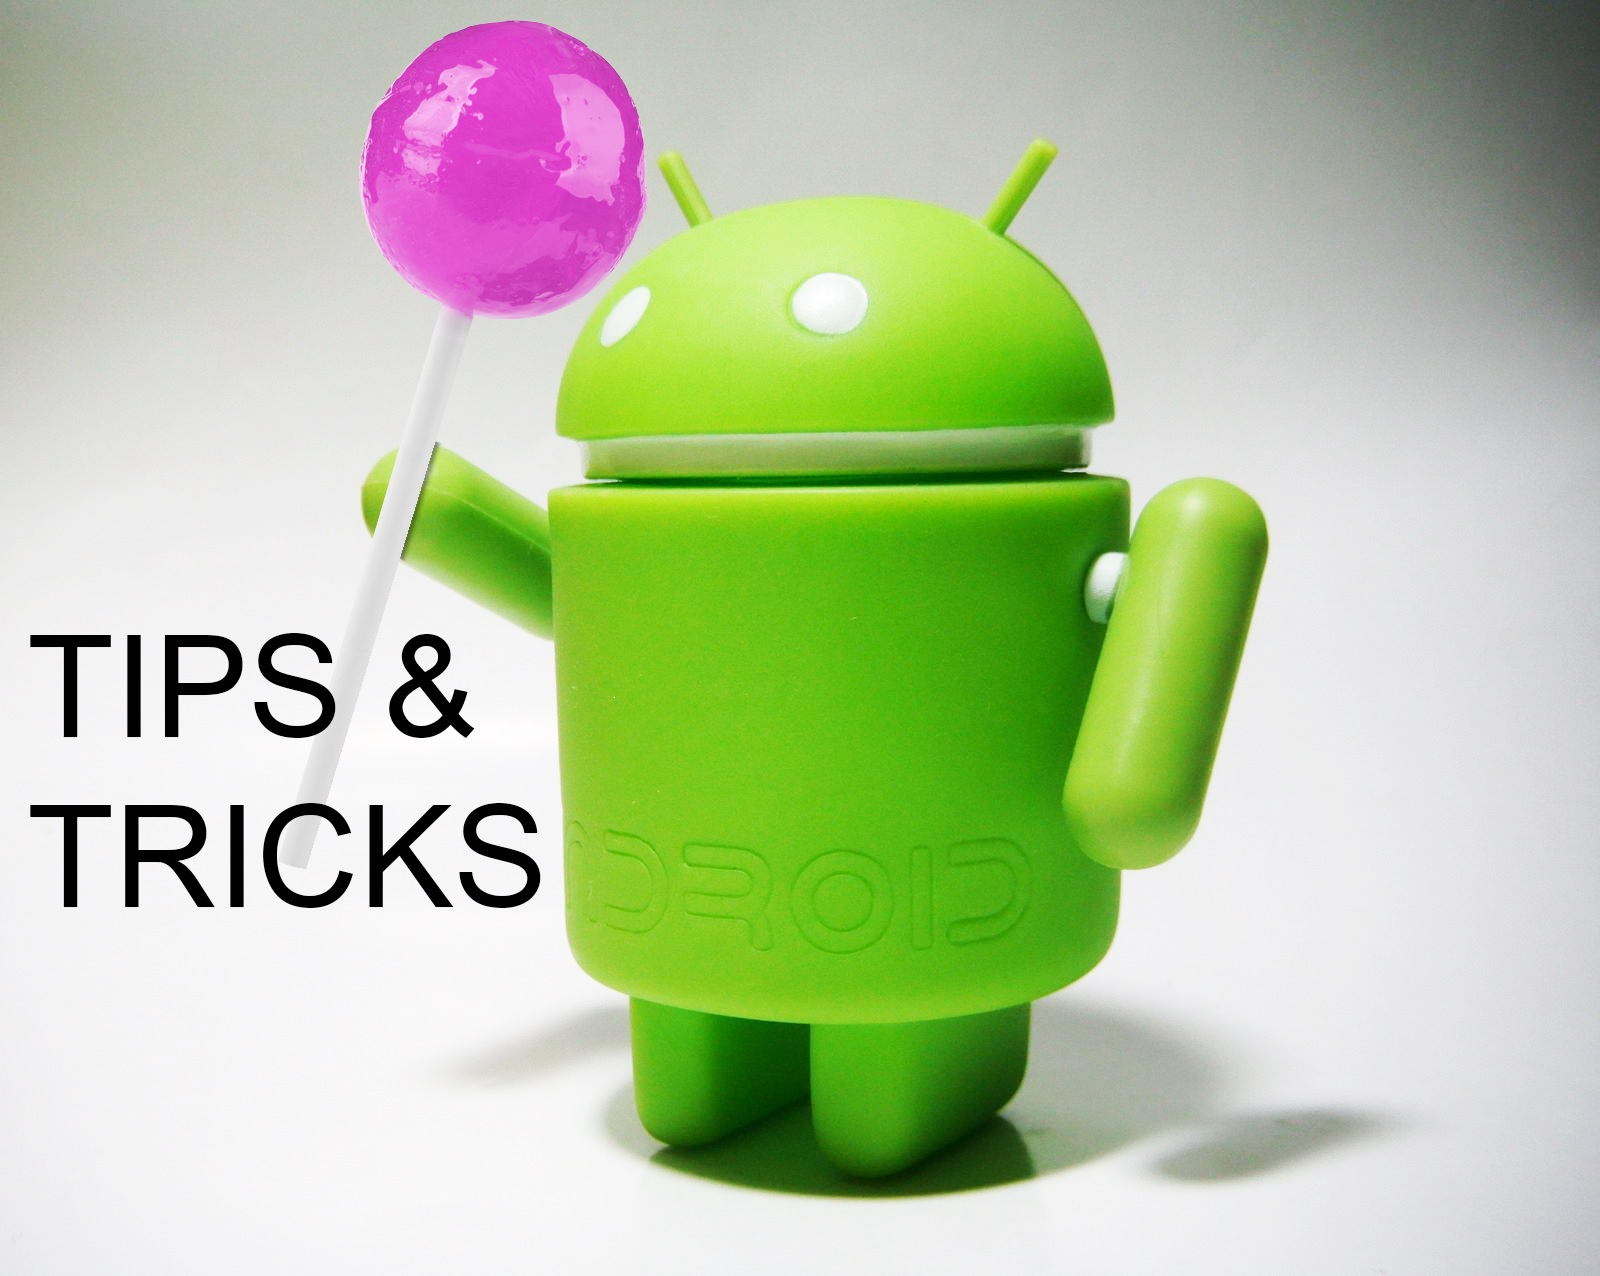 Tips & Tricks About Android You Probably Don't Know